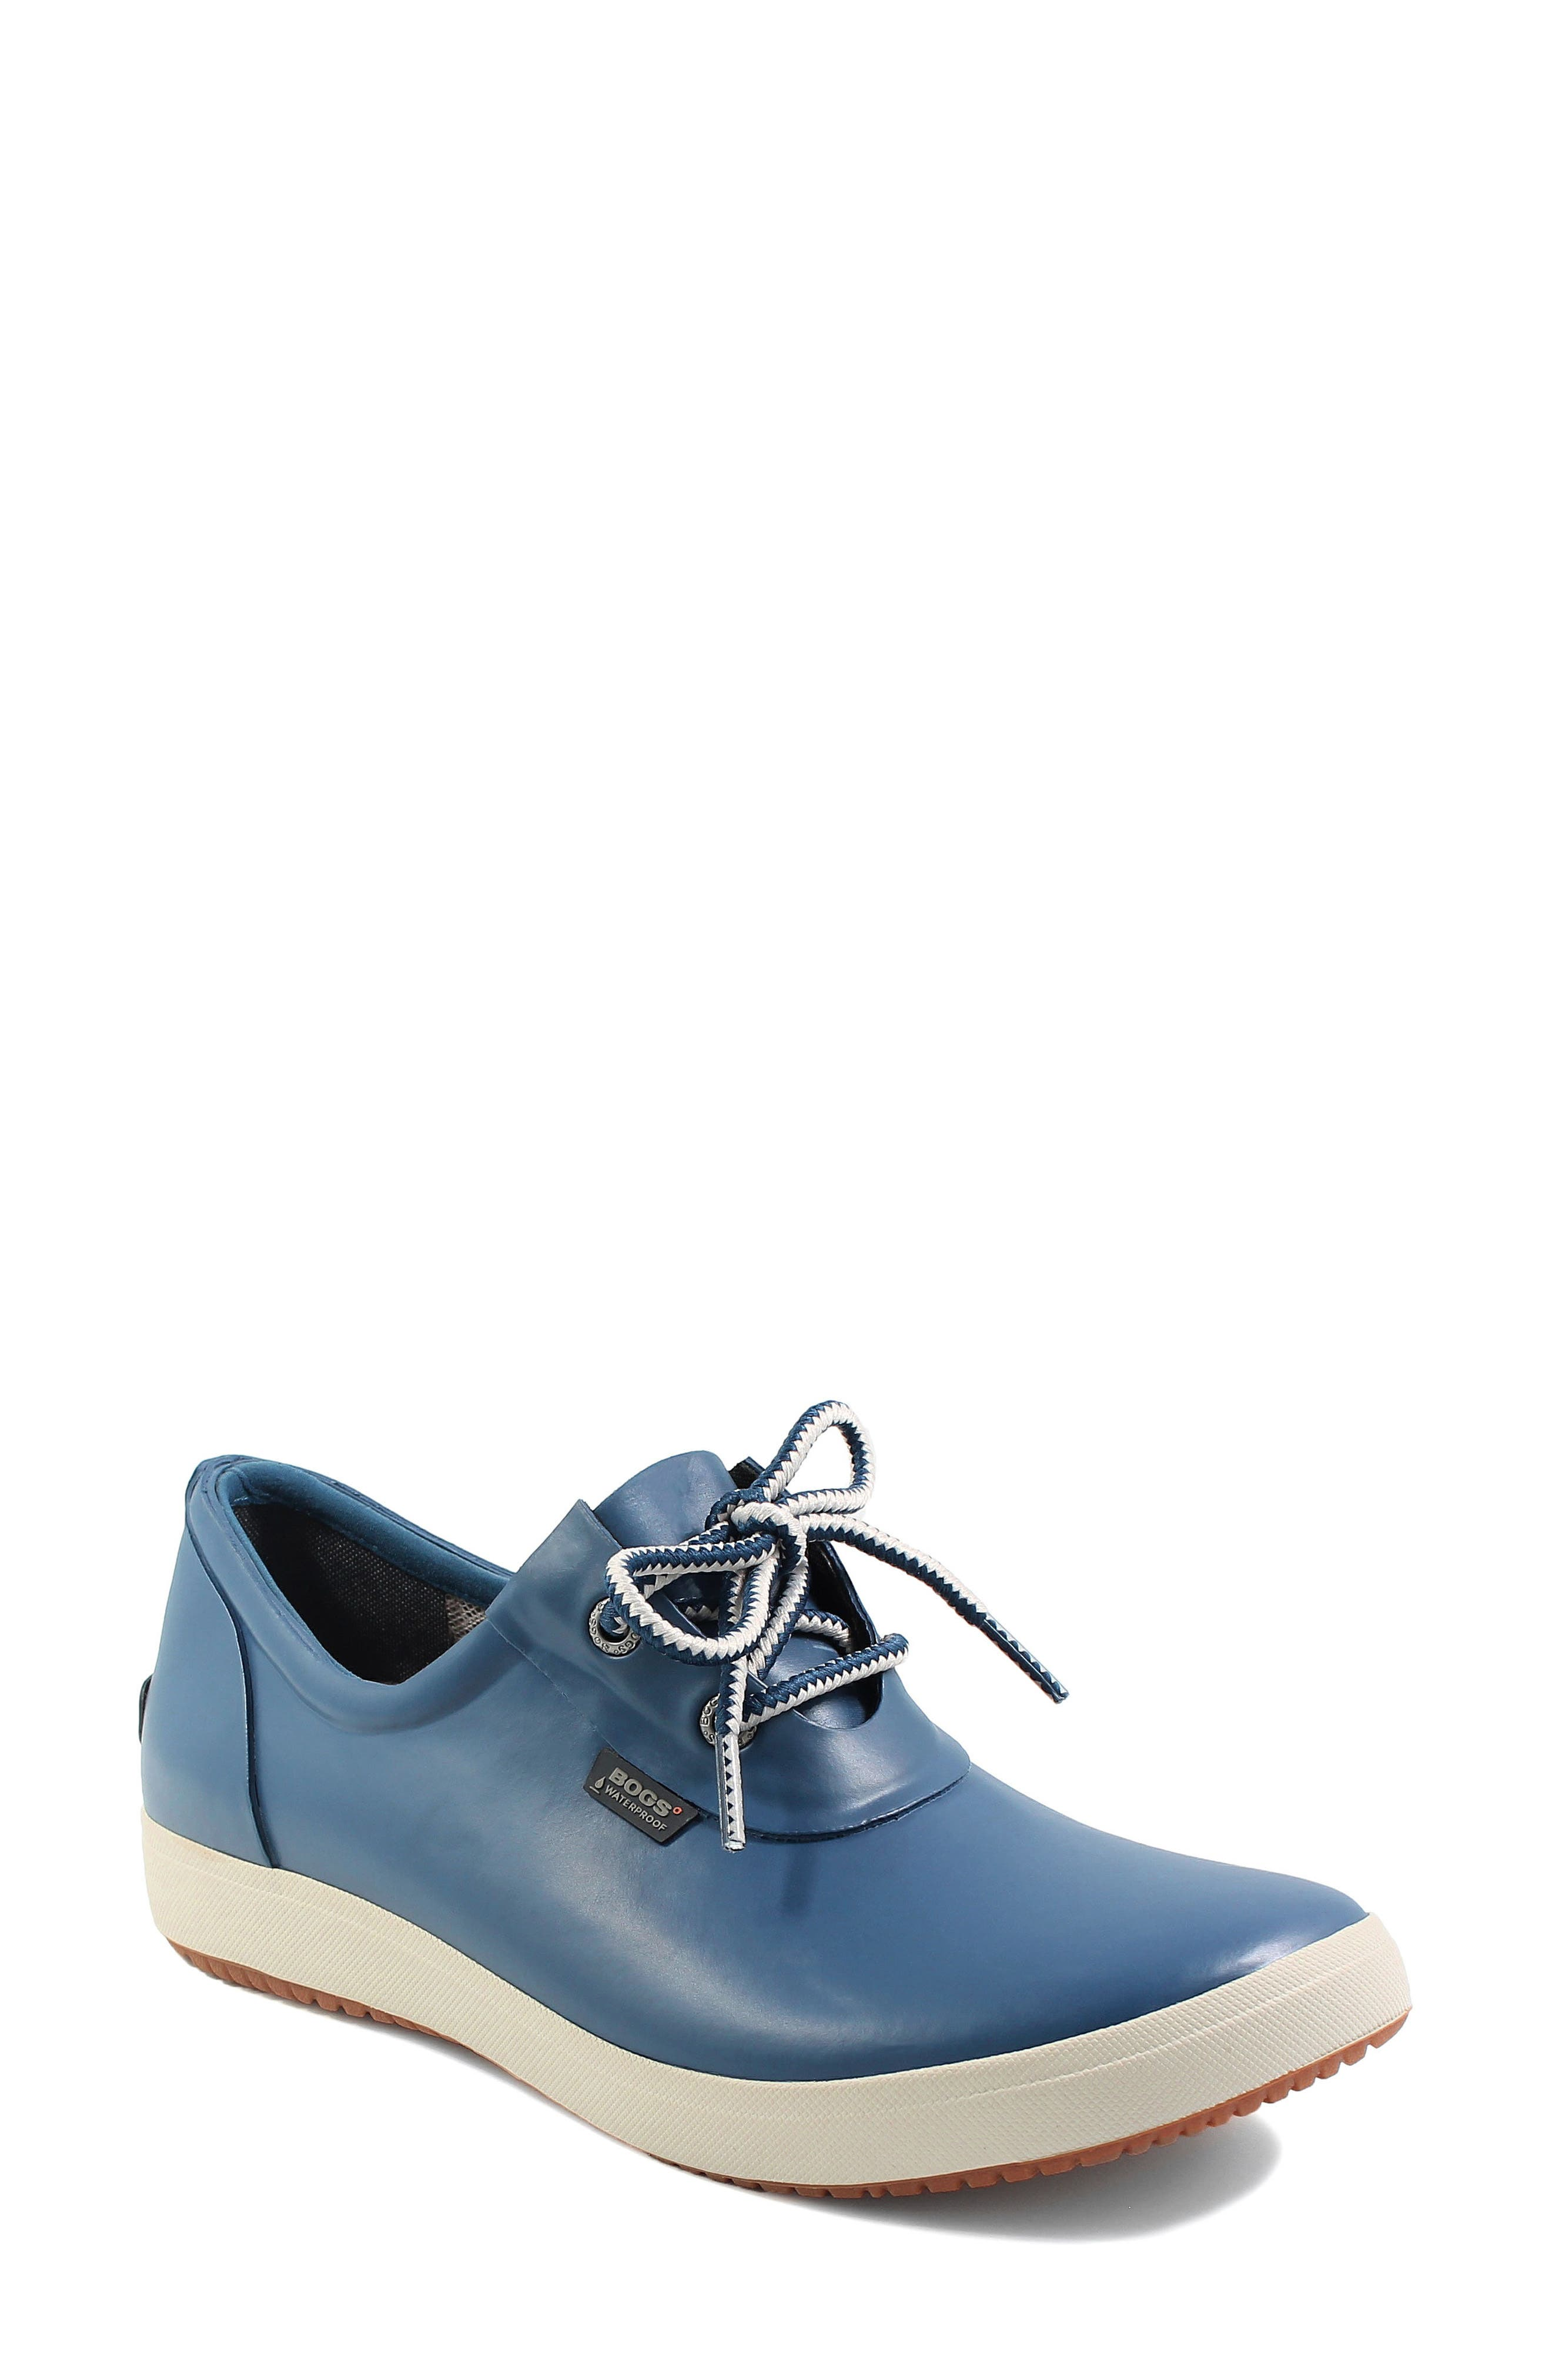 Bogs Quinn Waterproof Sneaker, Blue